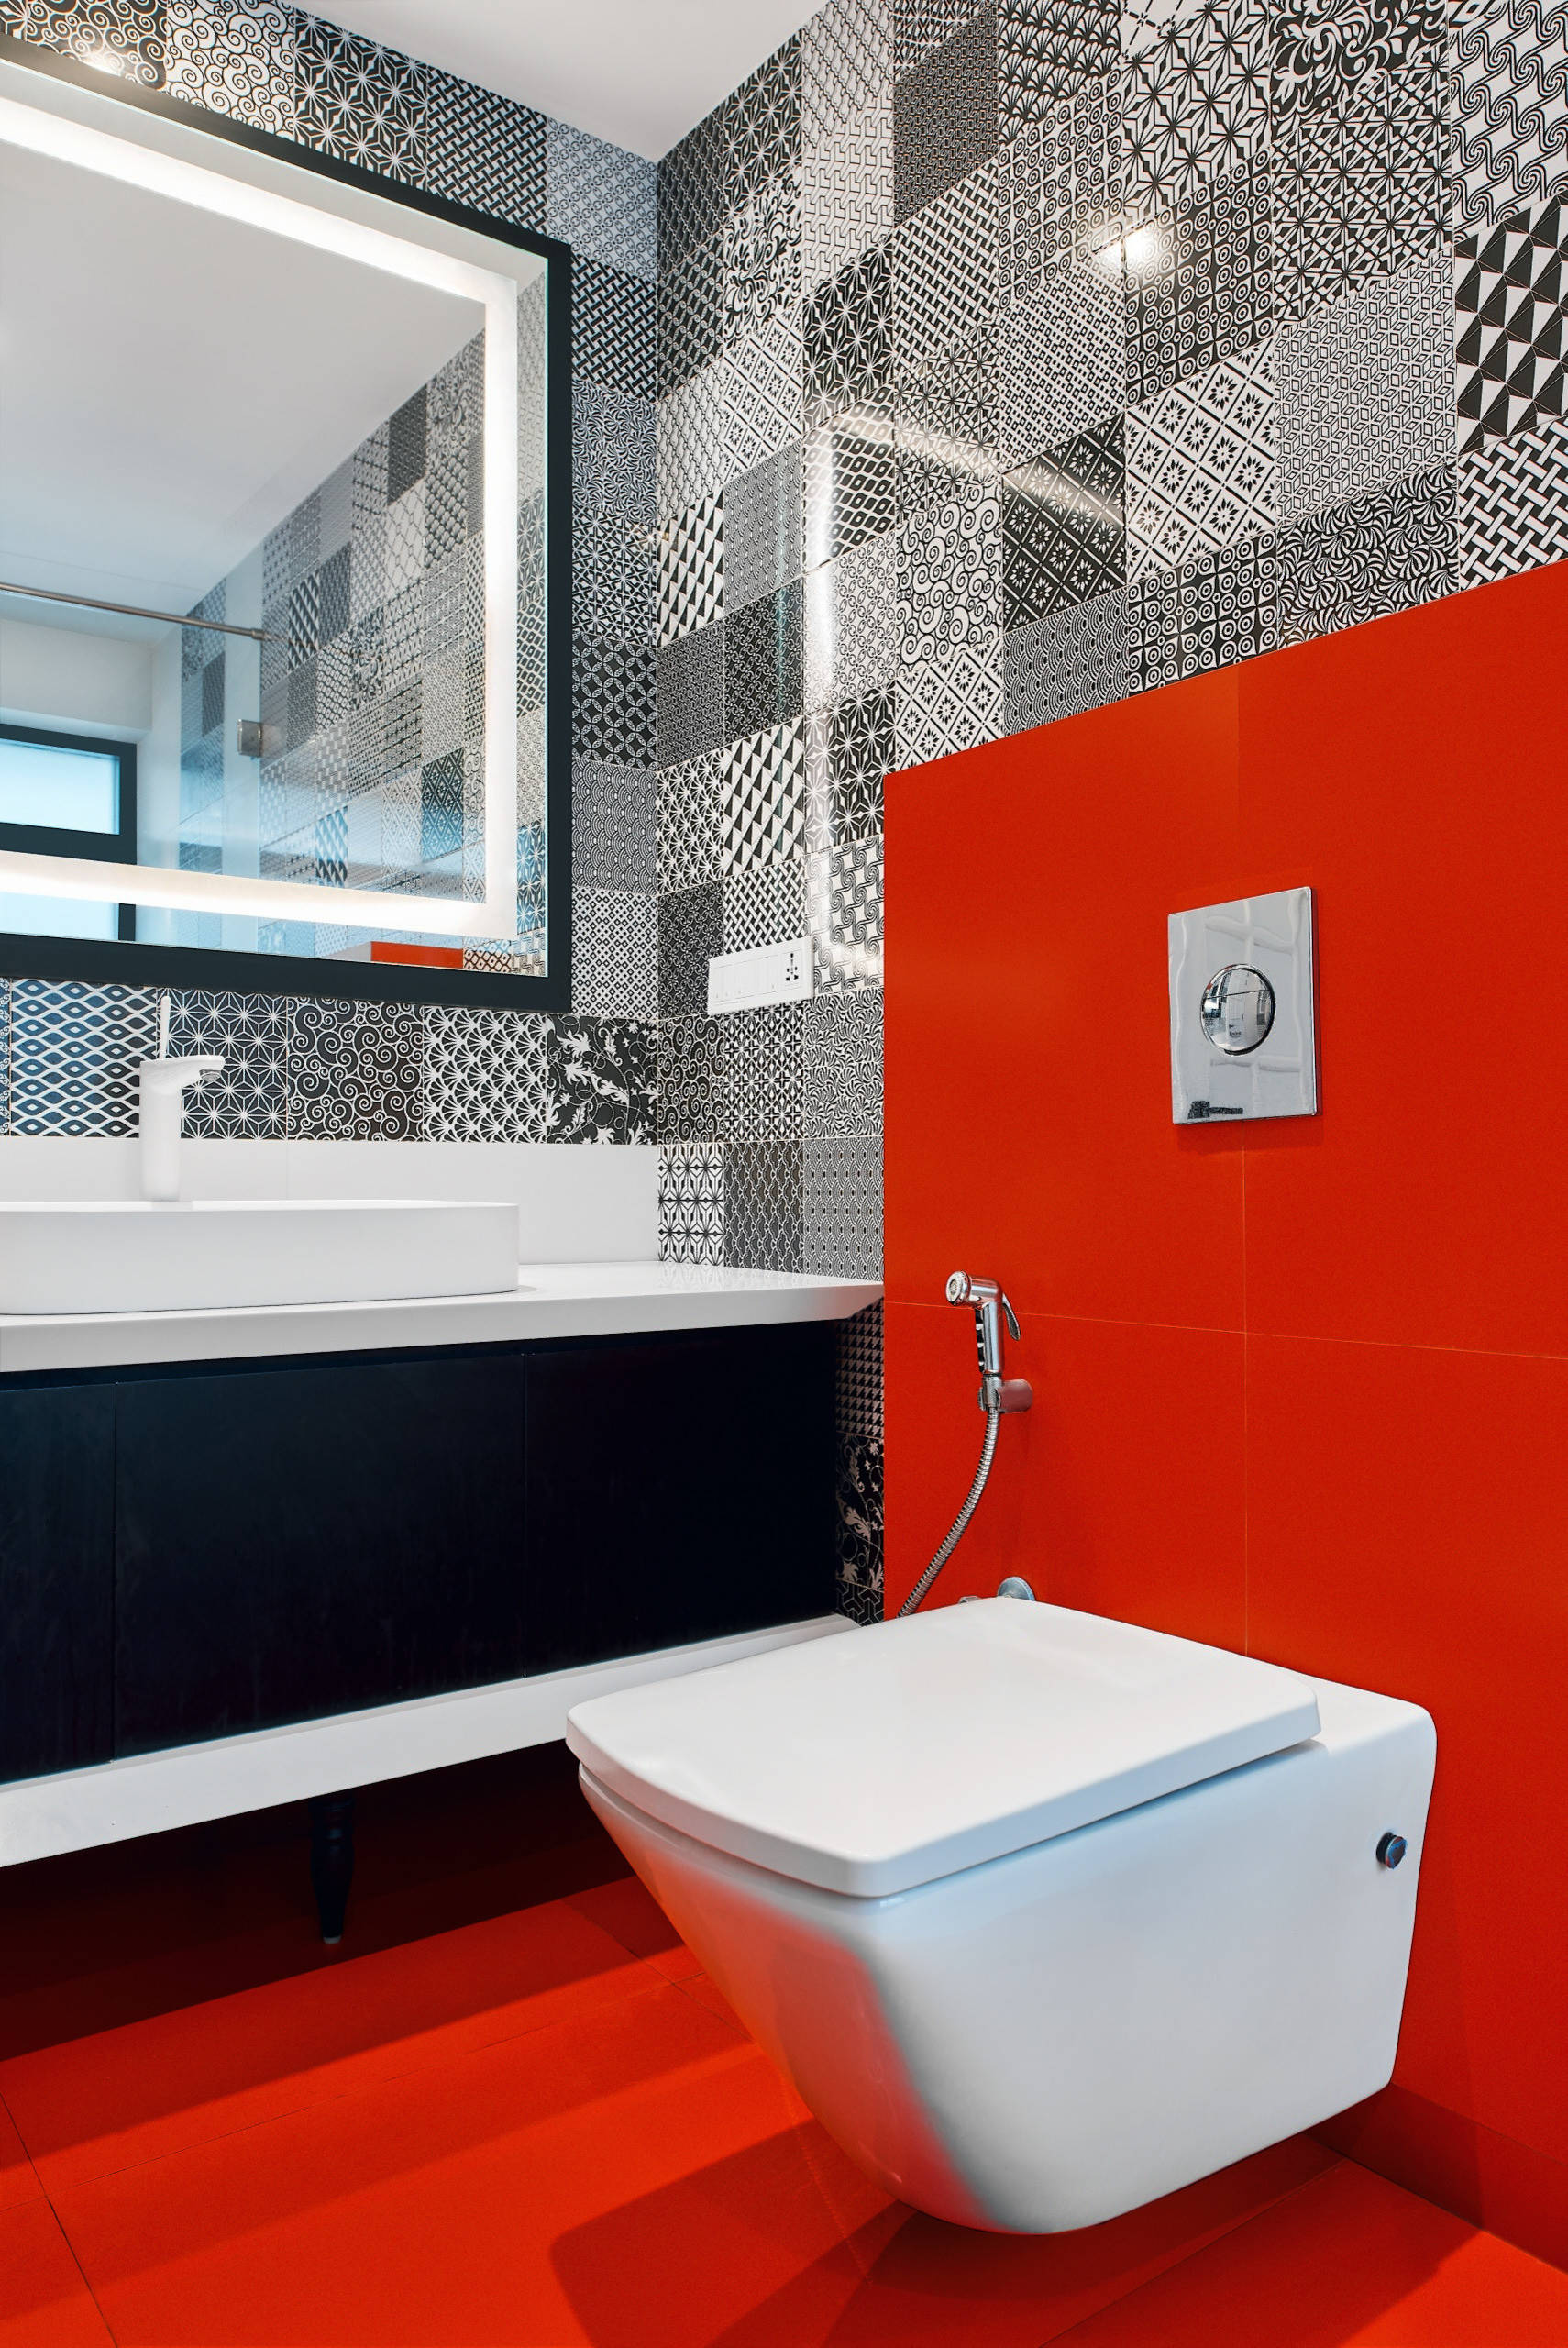 75 Beautiful Red Bathroom Pictures Ideas March 2021 Houzz